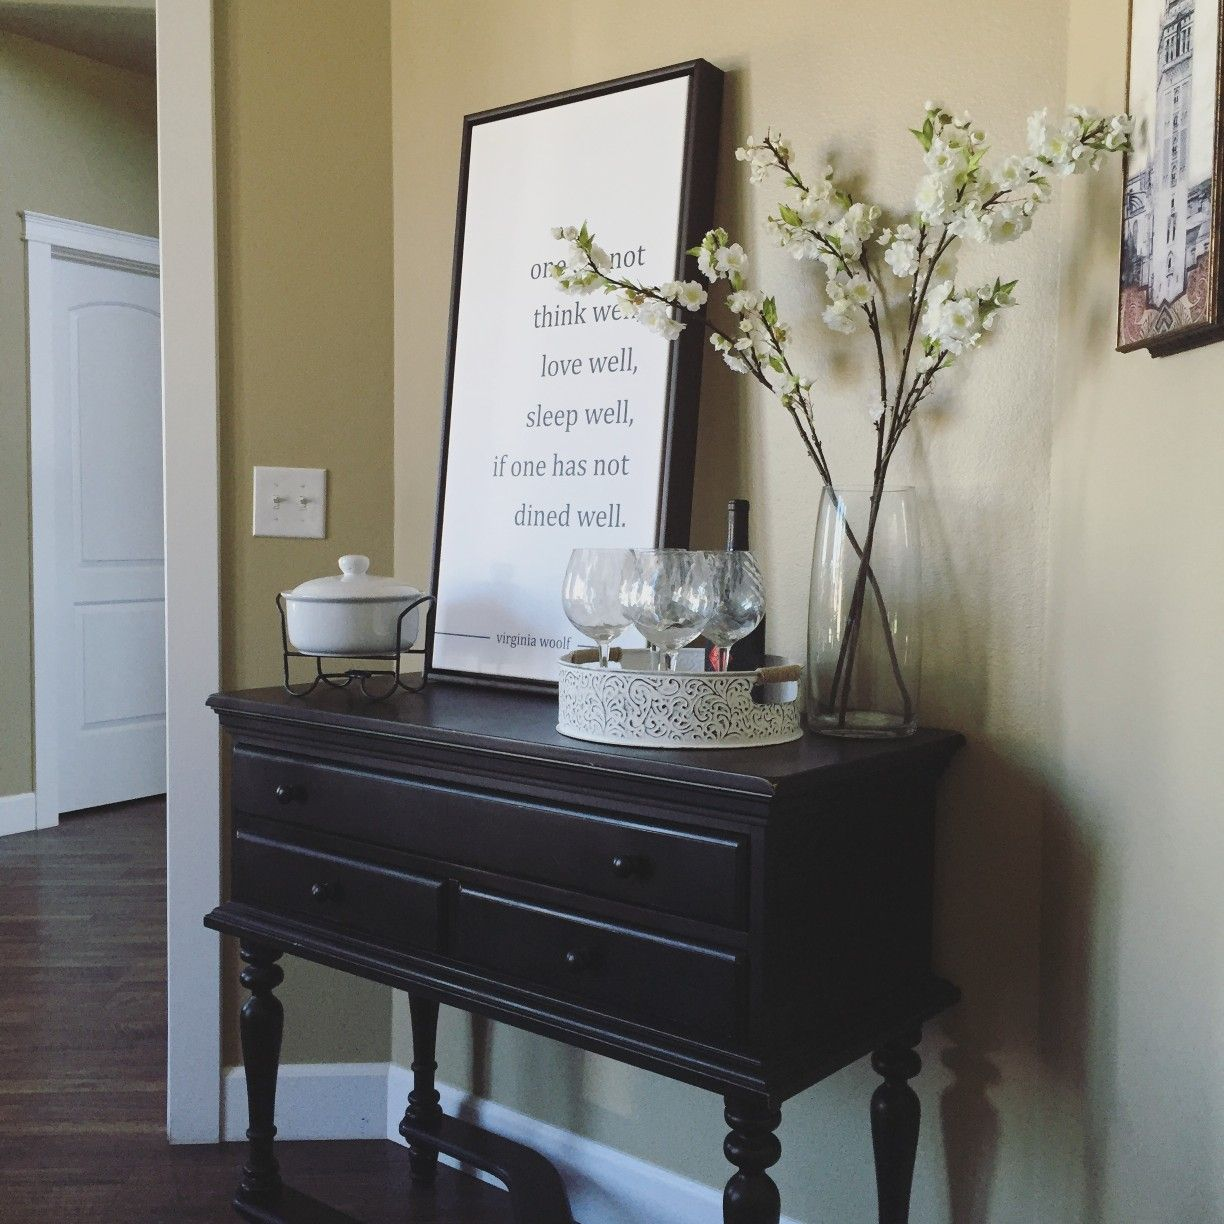 Dining room console table decor | Dining room console ...